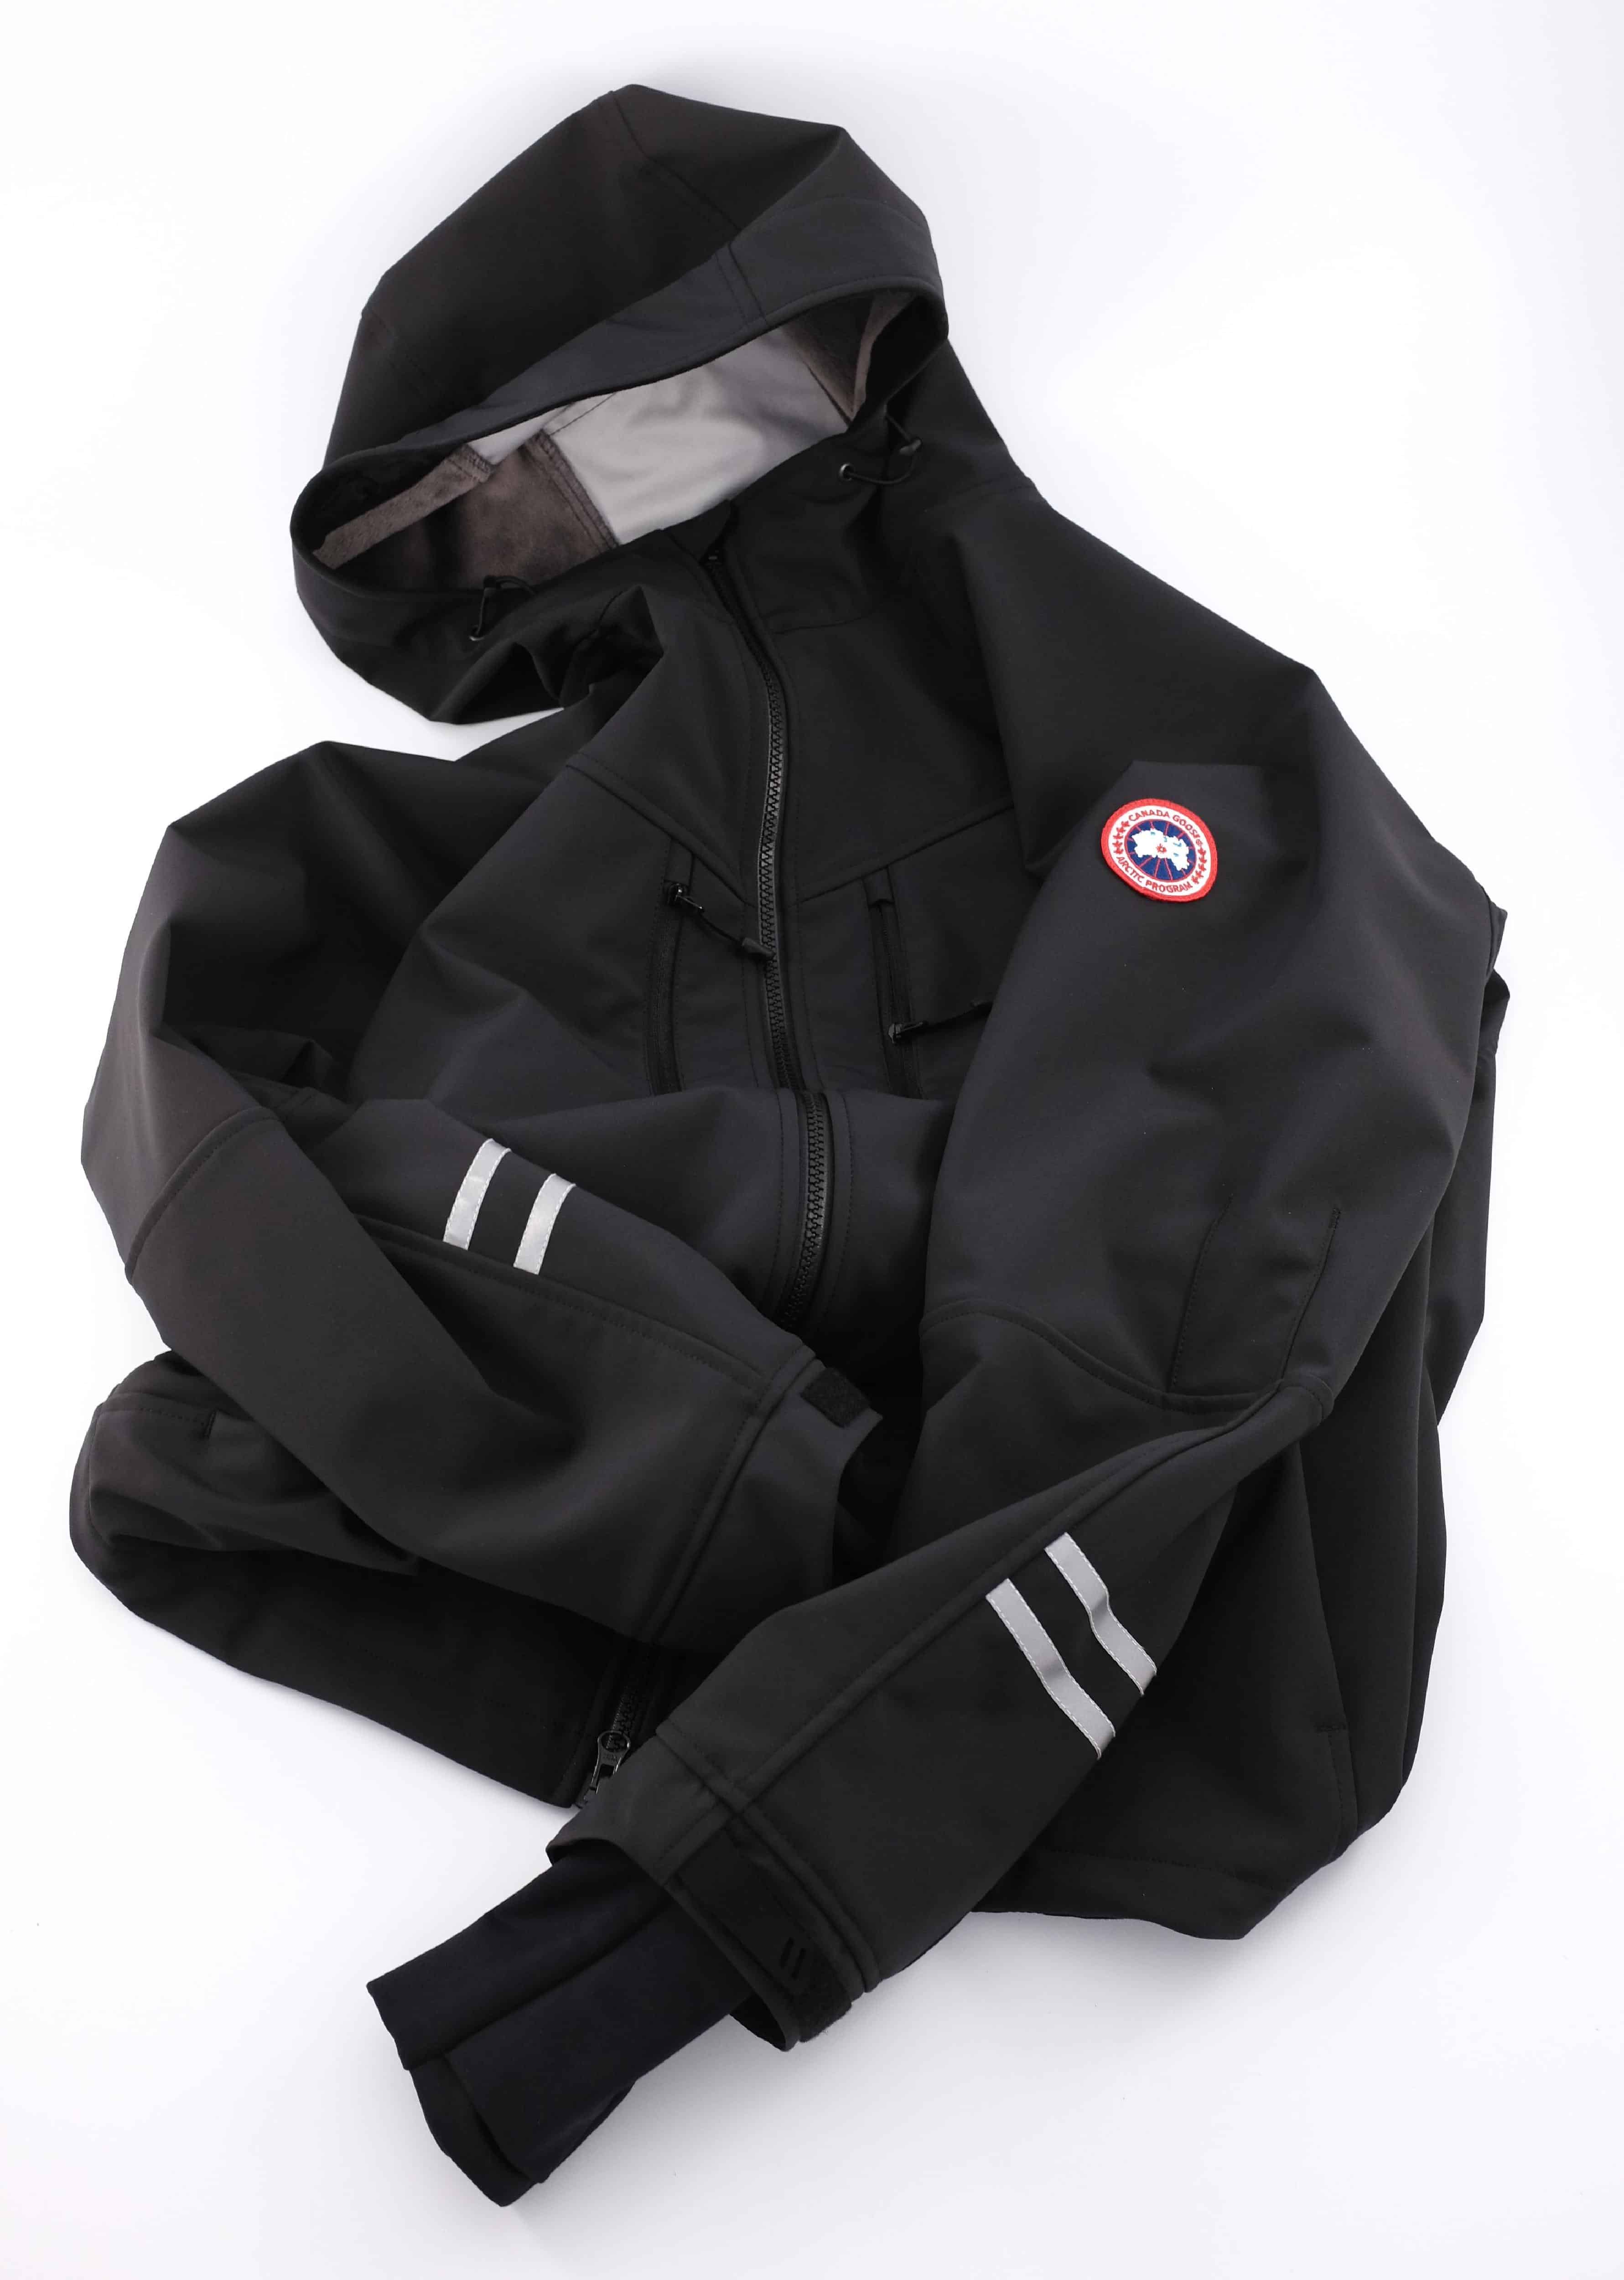 Canada Goose' cheap cycle